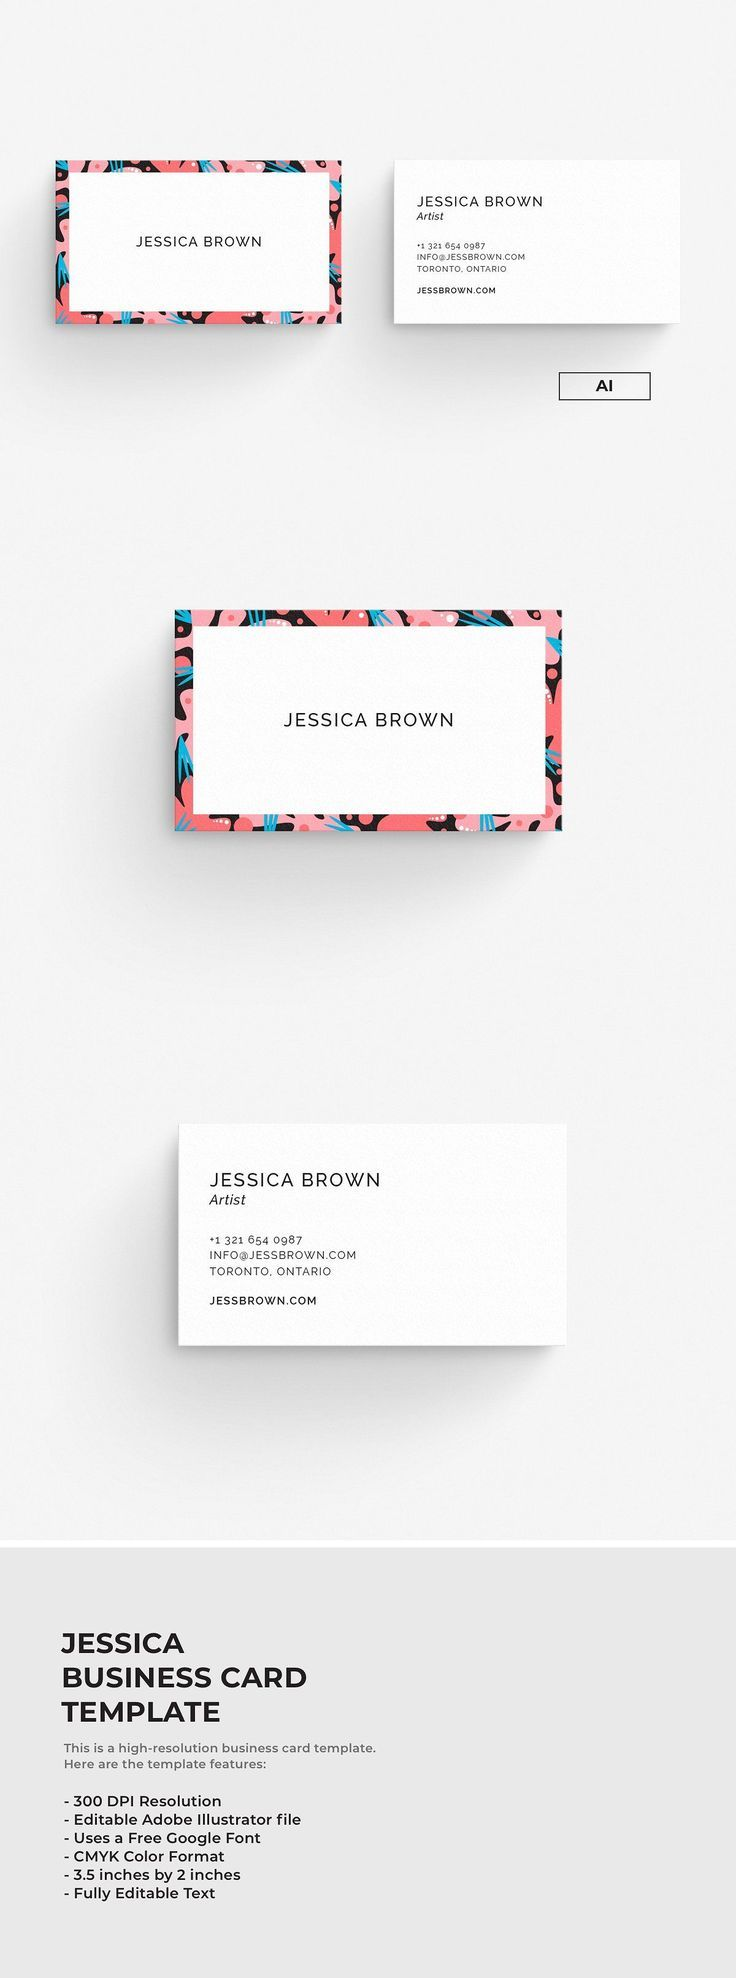 Jessica Business Card Template Graphic Design Business Card Illustration Business Cards Business Card Graphic